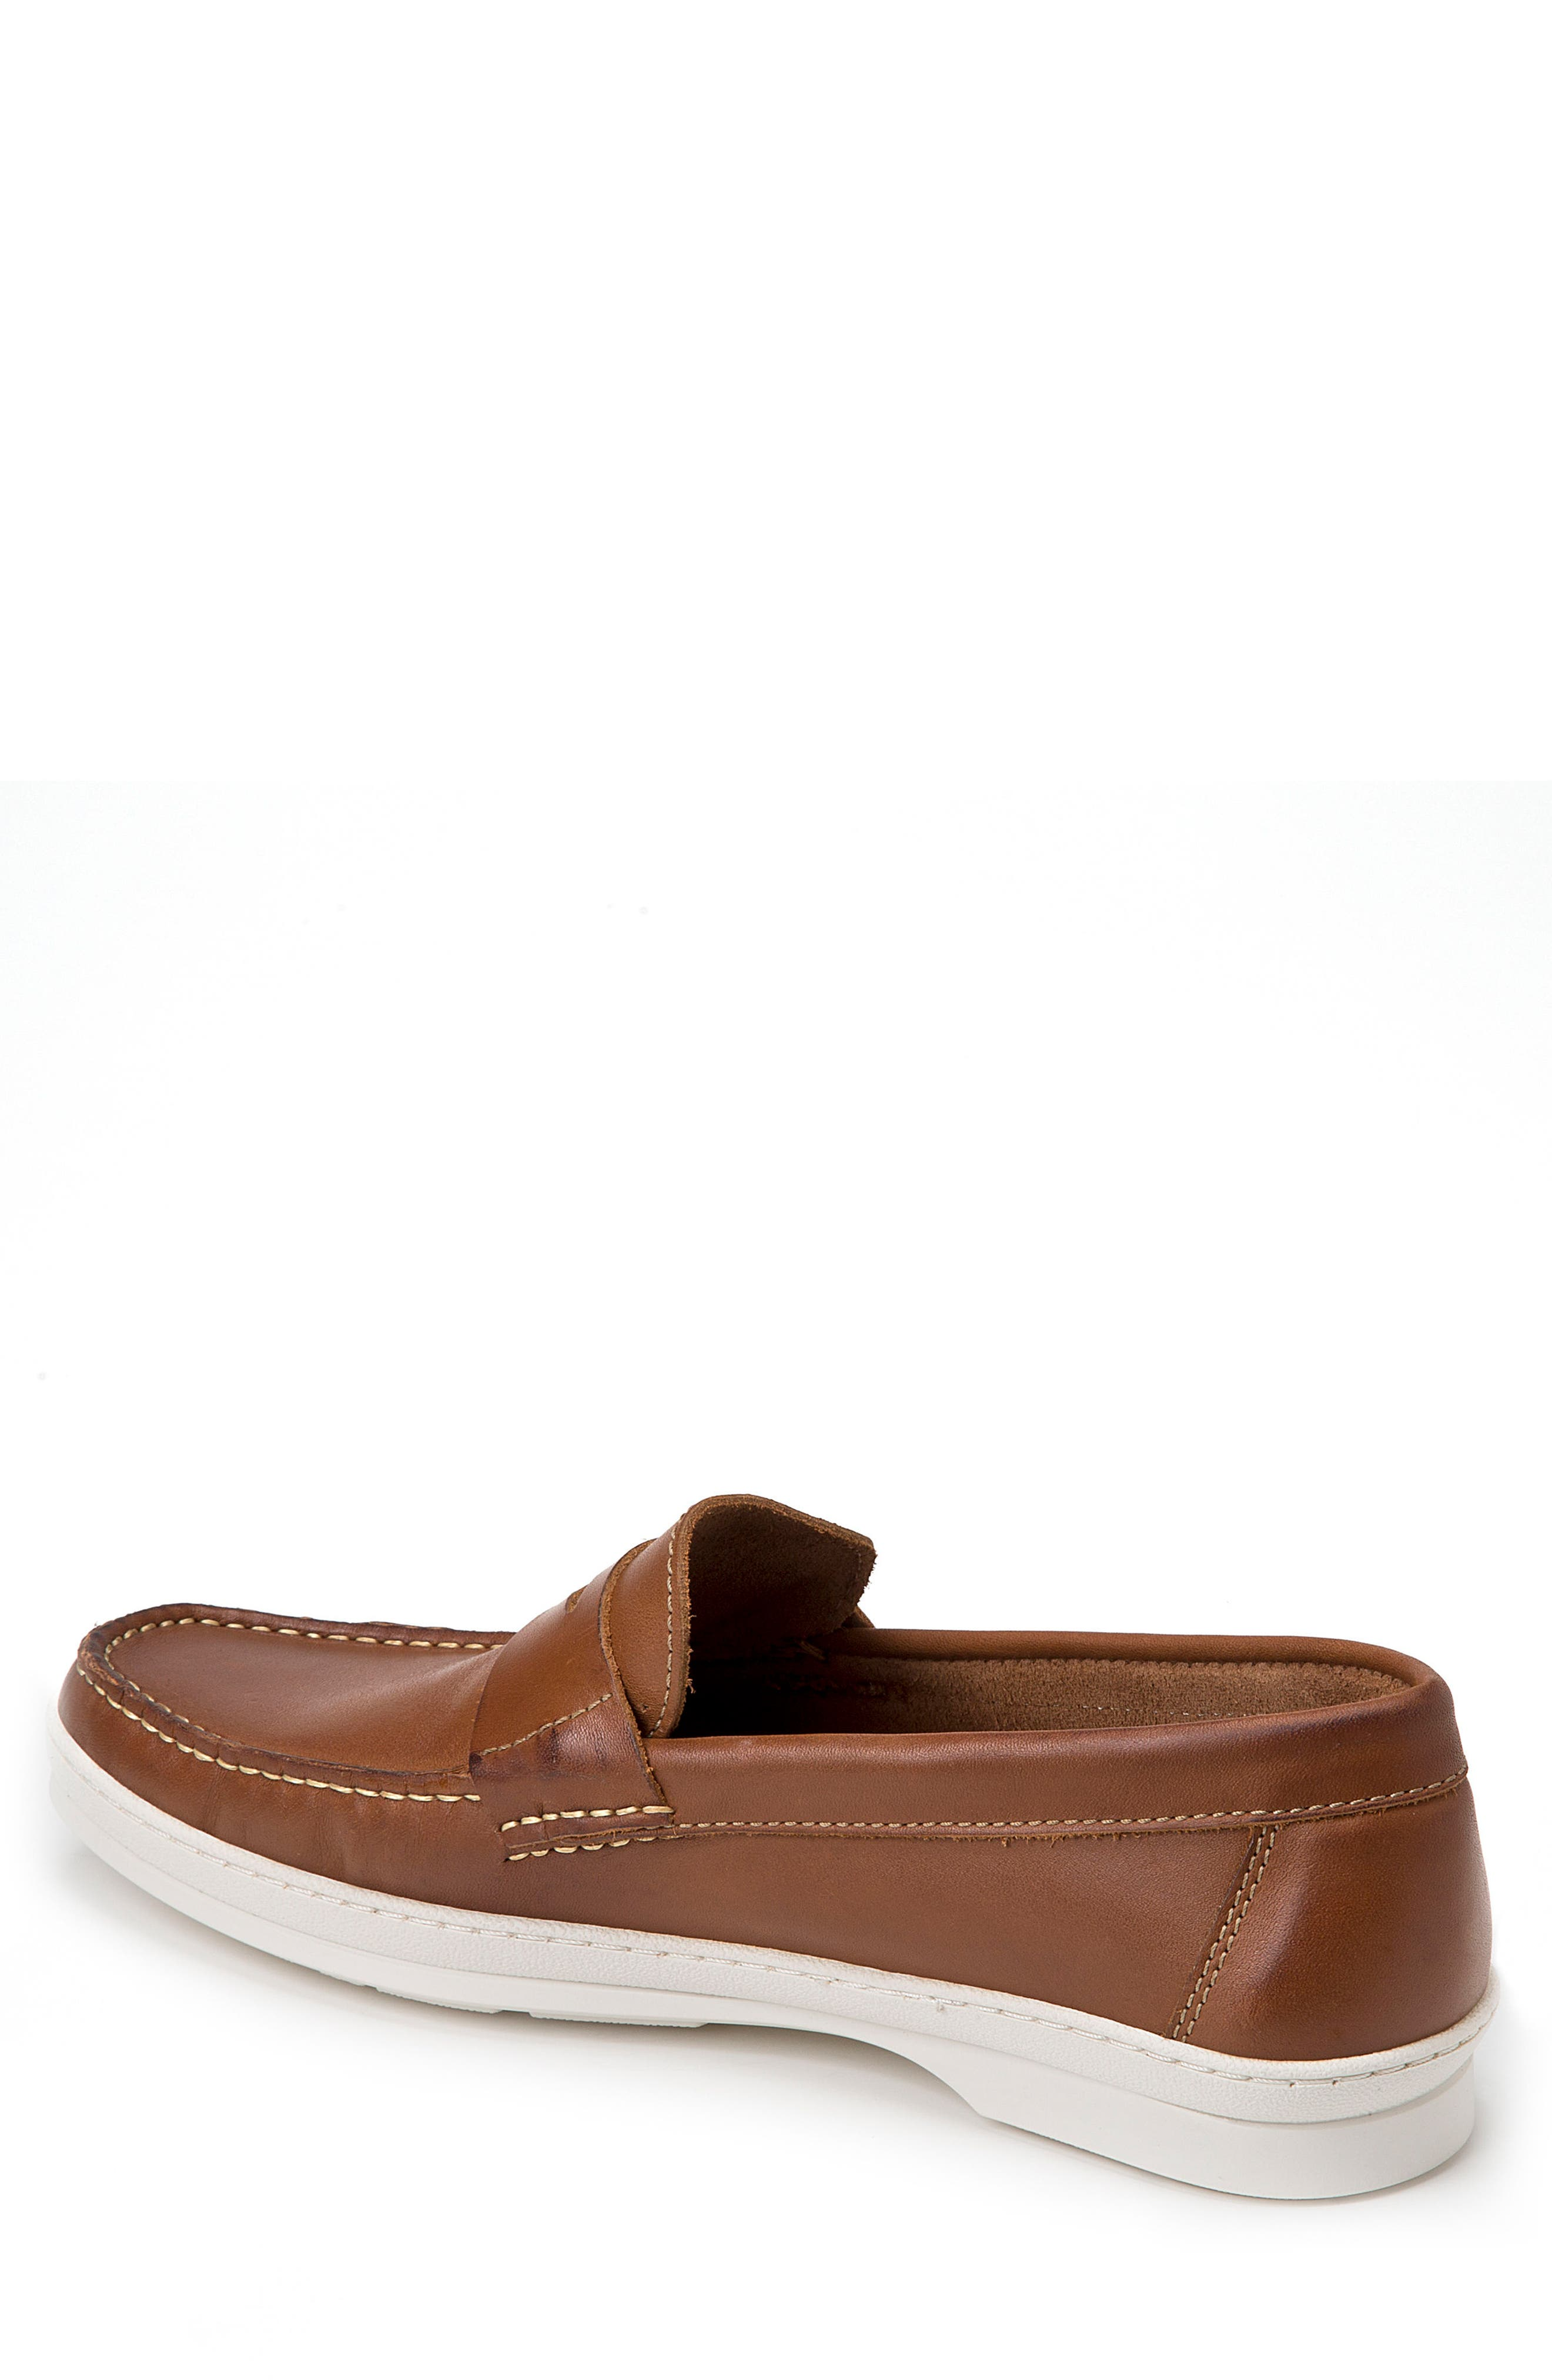 Simon Penny Loafer,                             Alternate thumbnail 2, color,                             Tan Leather